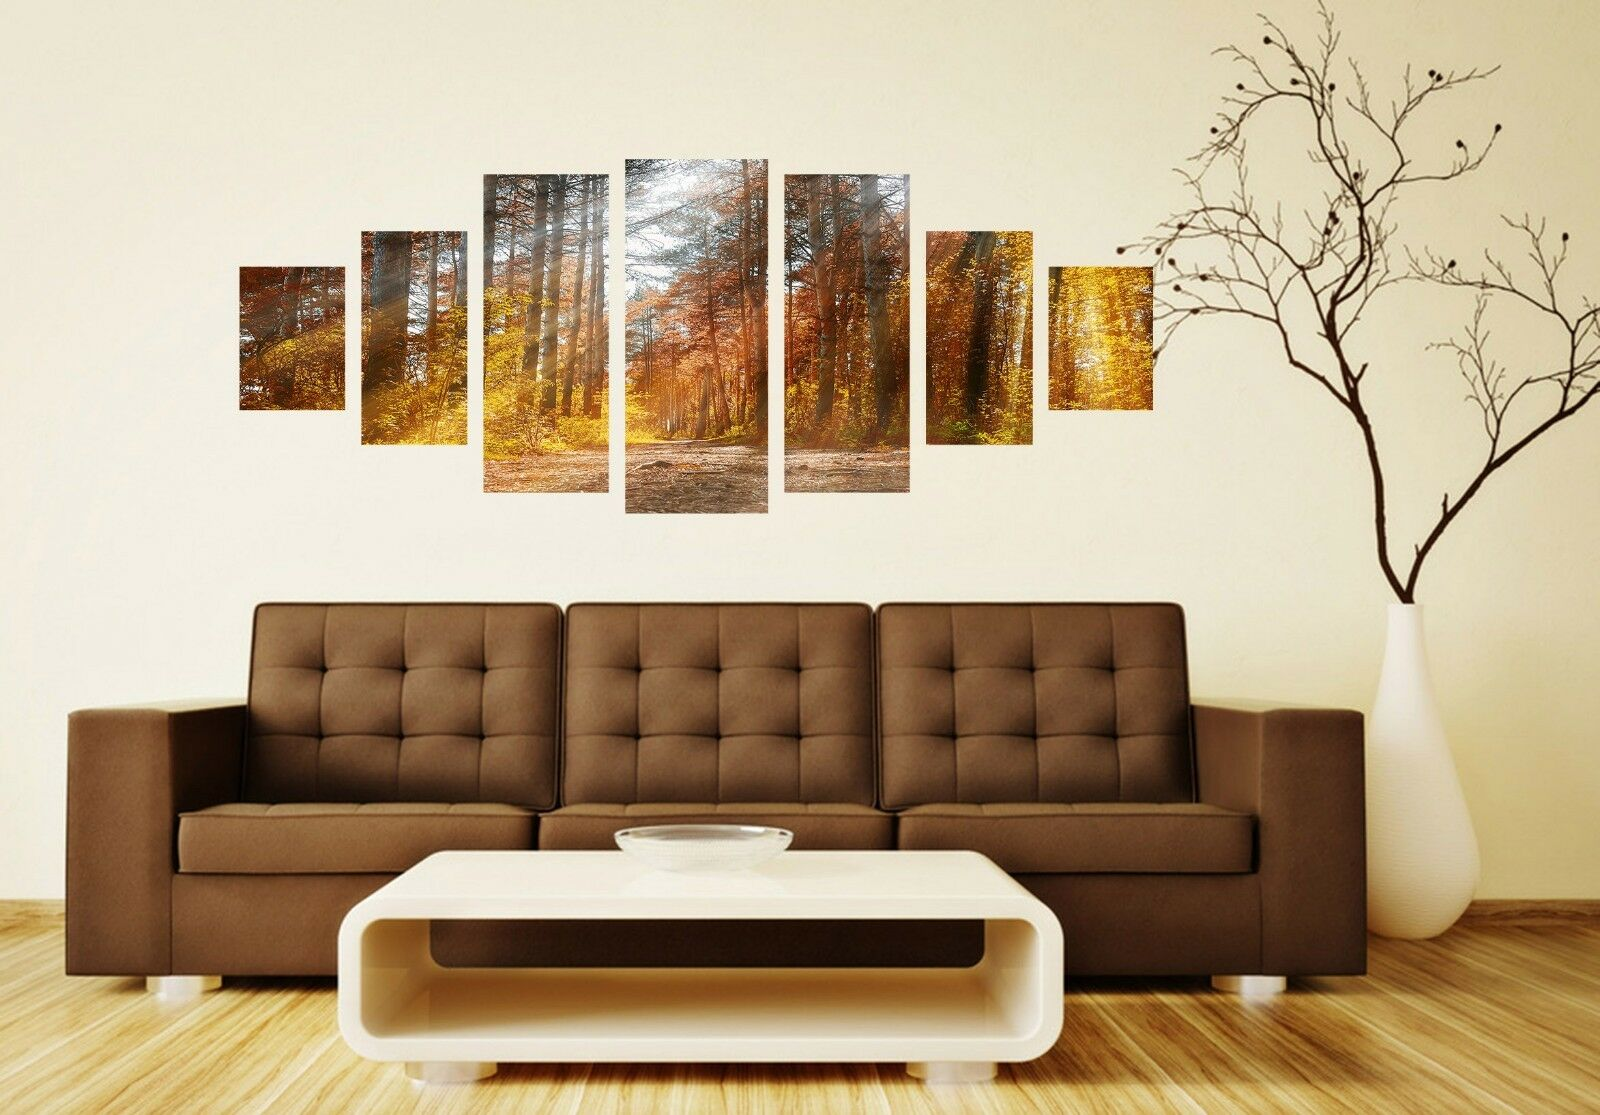 3D Sunny Forest 72 Unframed Print Wall Paper Decal Wall Deco Indoor AJ Jenny